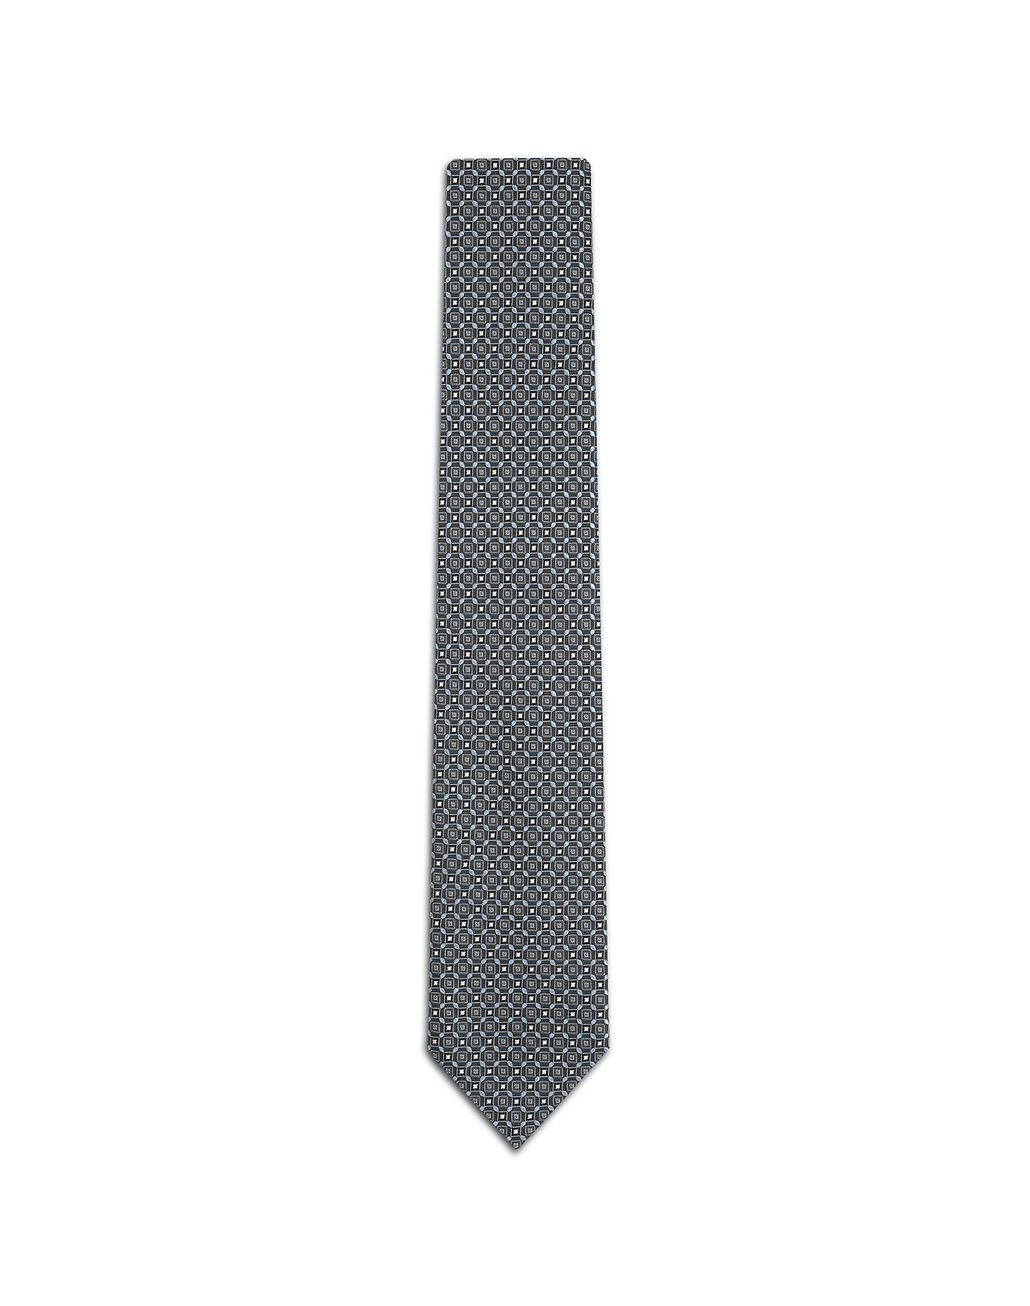 BRIONI Cravate médaillon bleu nuit Cravate [*** pickupInStoreShippingNotGuaranteed_info ***] f